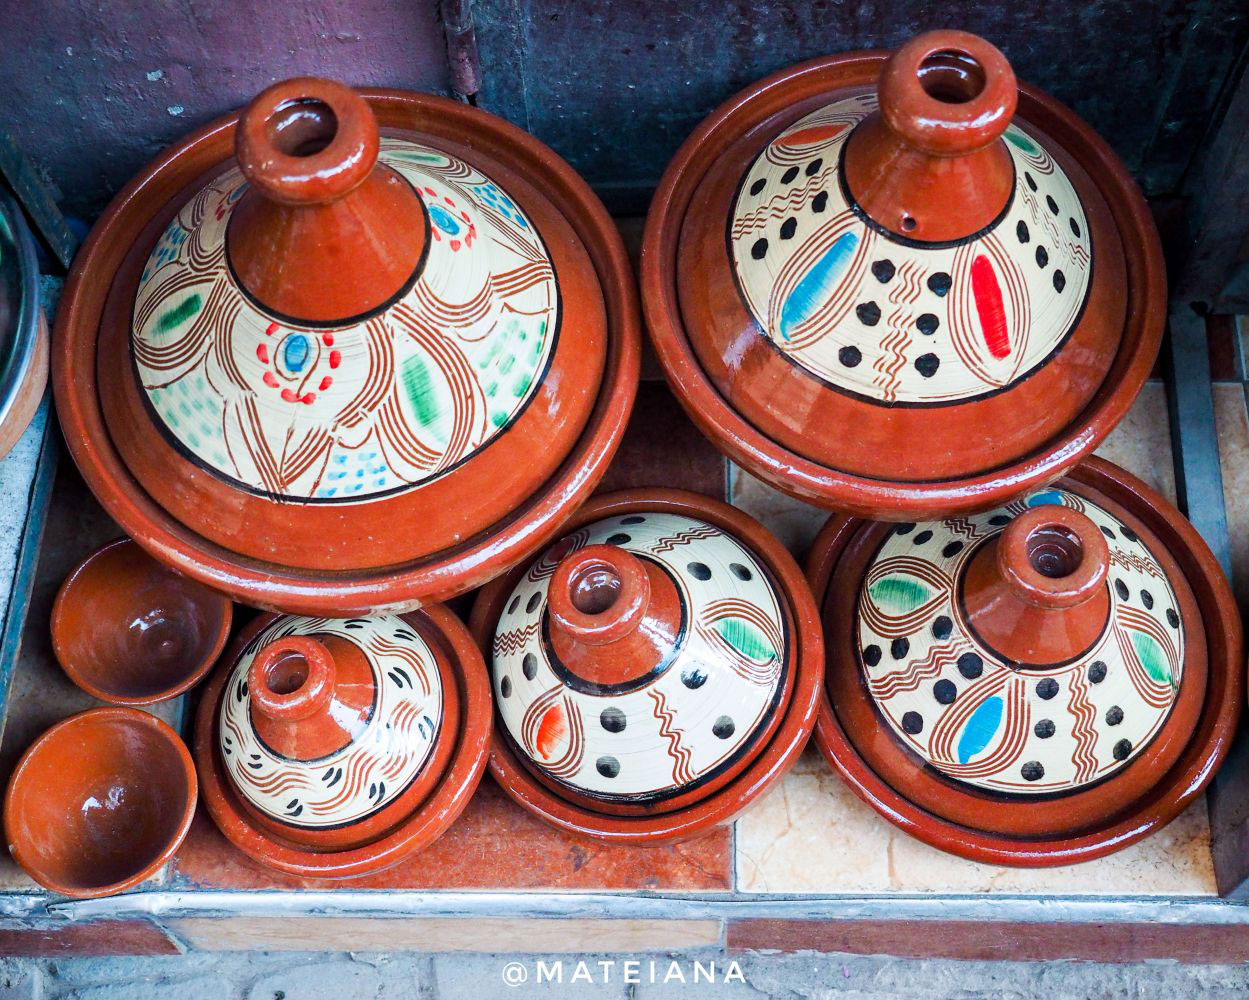 Tagines---Tajines-ceramic-pots-in-Marrakech,-Morocco